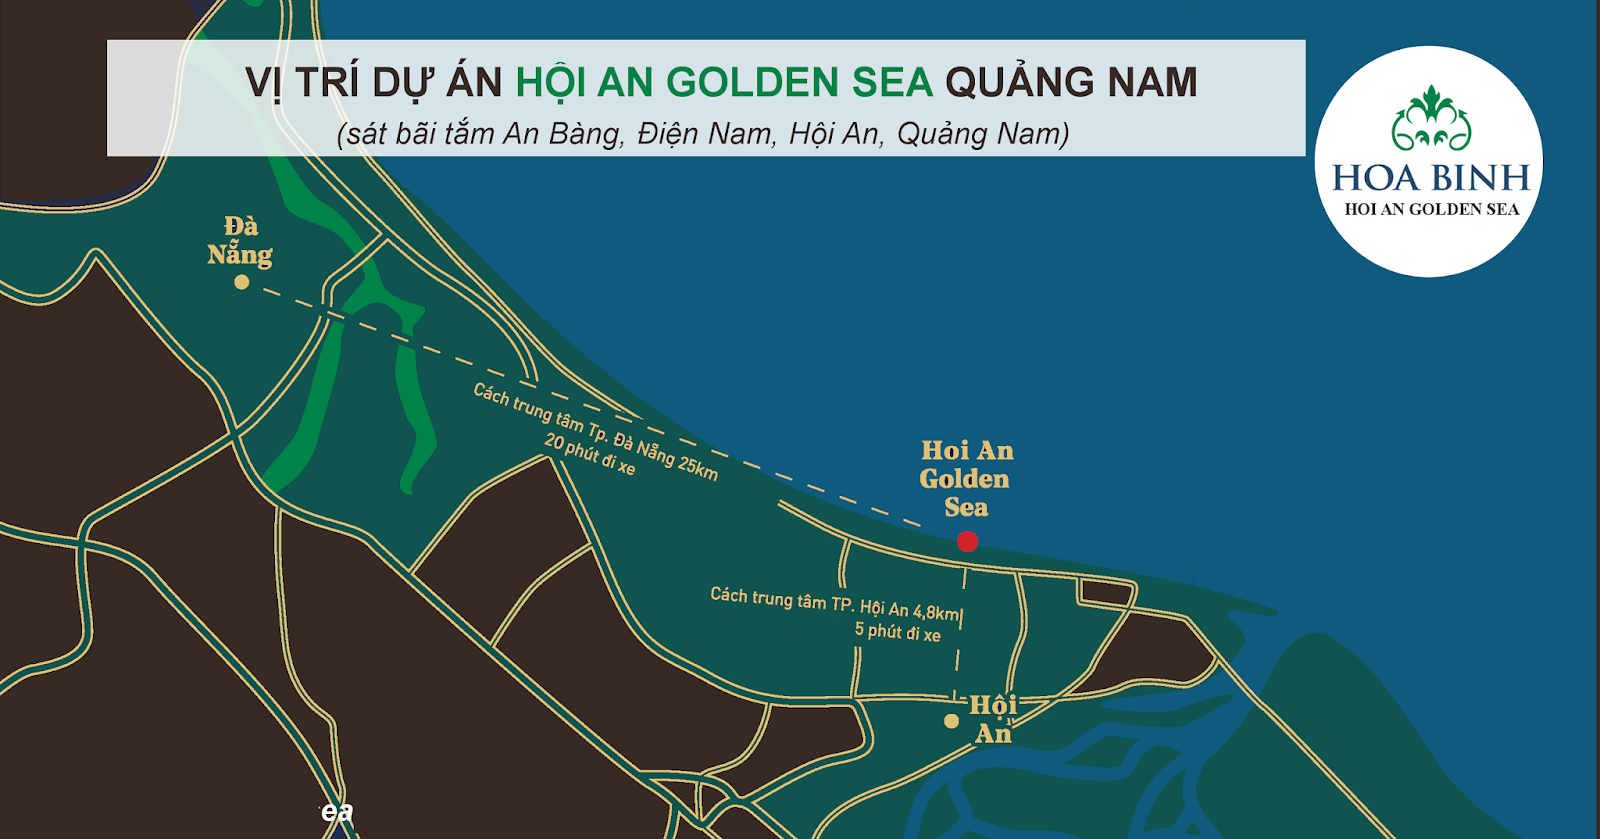 Vi_tri_du_an_Hoi_An_Golden_Sea_Quang_Nam